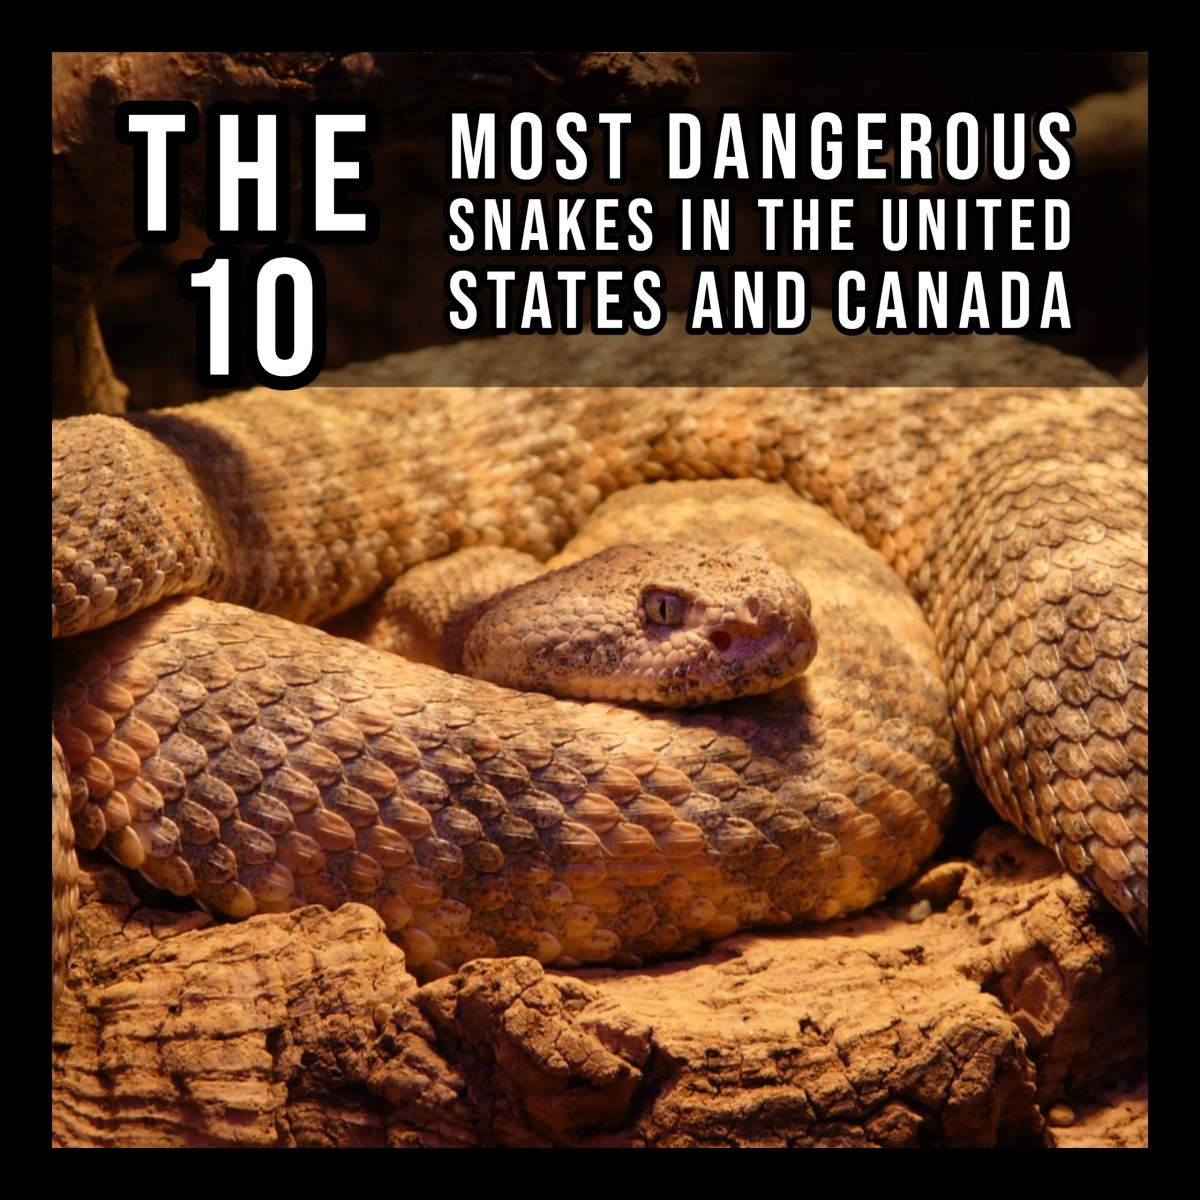 The Top 10 Deadliest Snakes in the United States